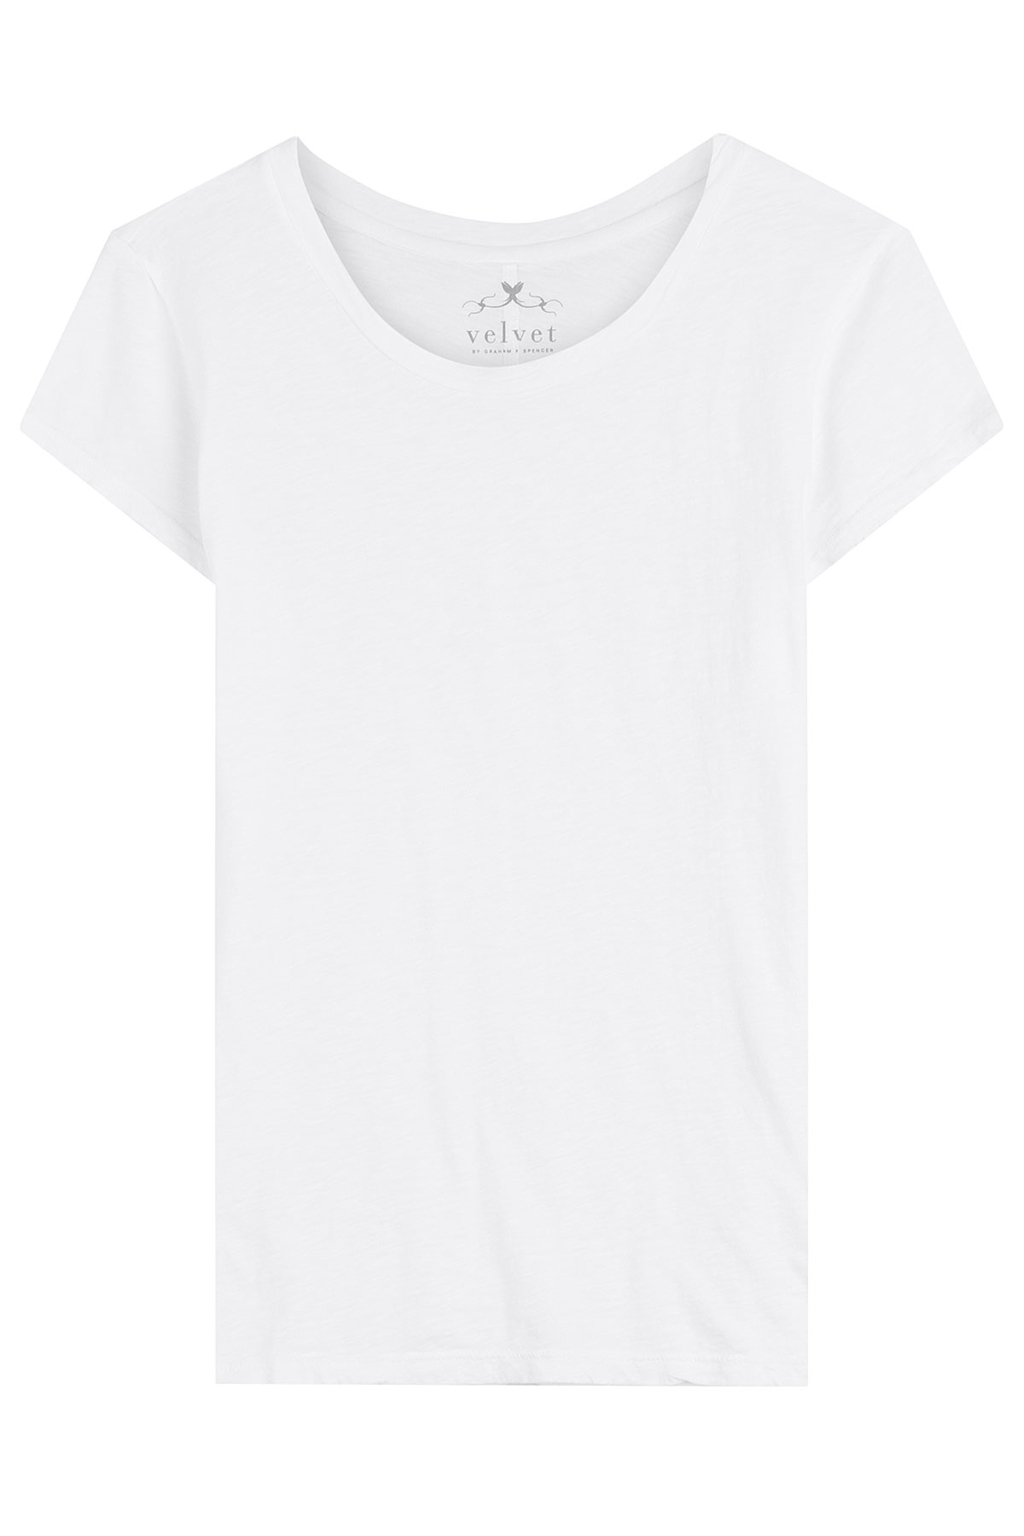 Cotton T Shirt - neckline: round neck; pattern: plain; style: t-shirt; predominant colour: white; occasions: casual; length: standard; fibres: cotton - 100%; fit: straight cut; sleeve length: short sleeve; sleeve style: standard; pattern type: fabric; texture group: jersey - stretchy/drapey; season: s/s 2016; wardrobe: basic